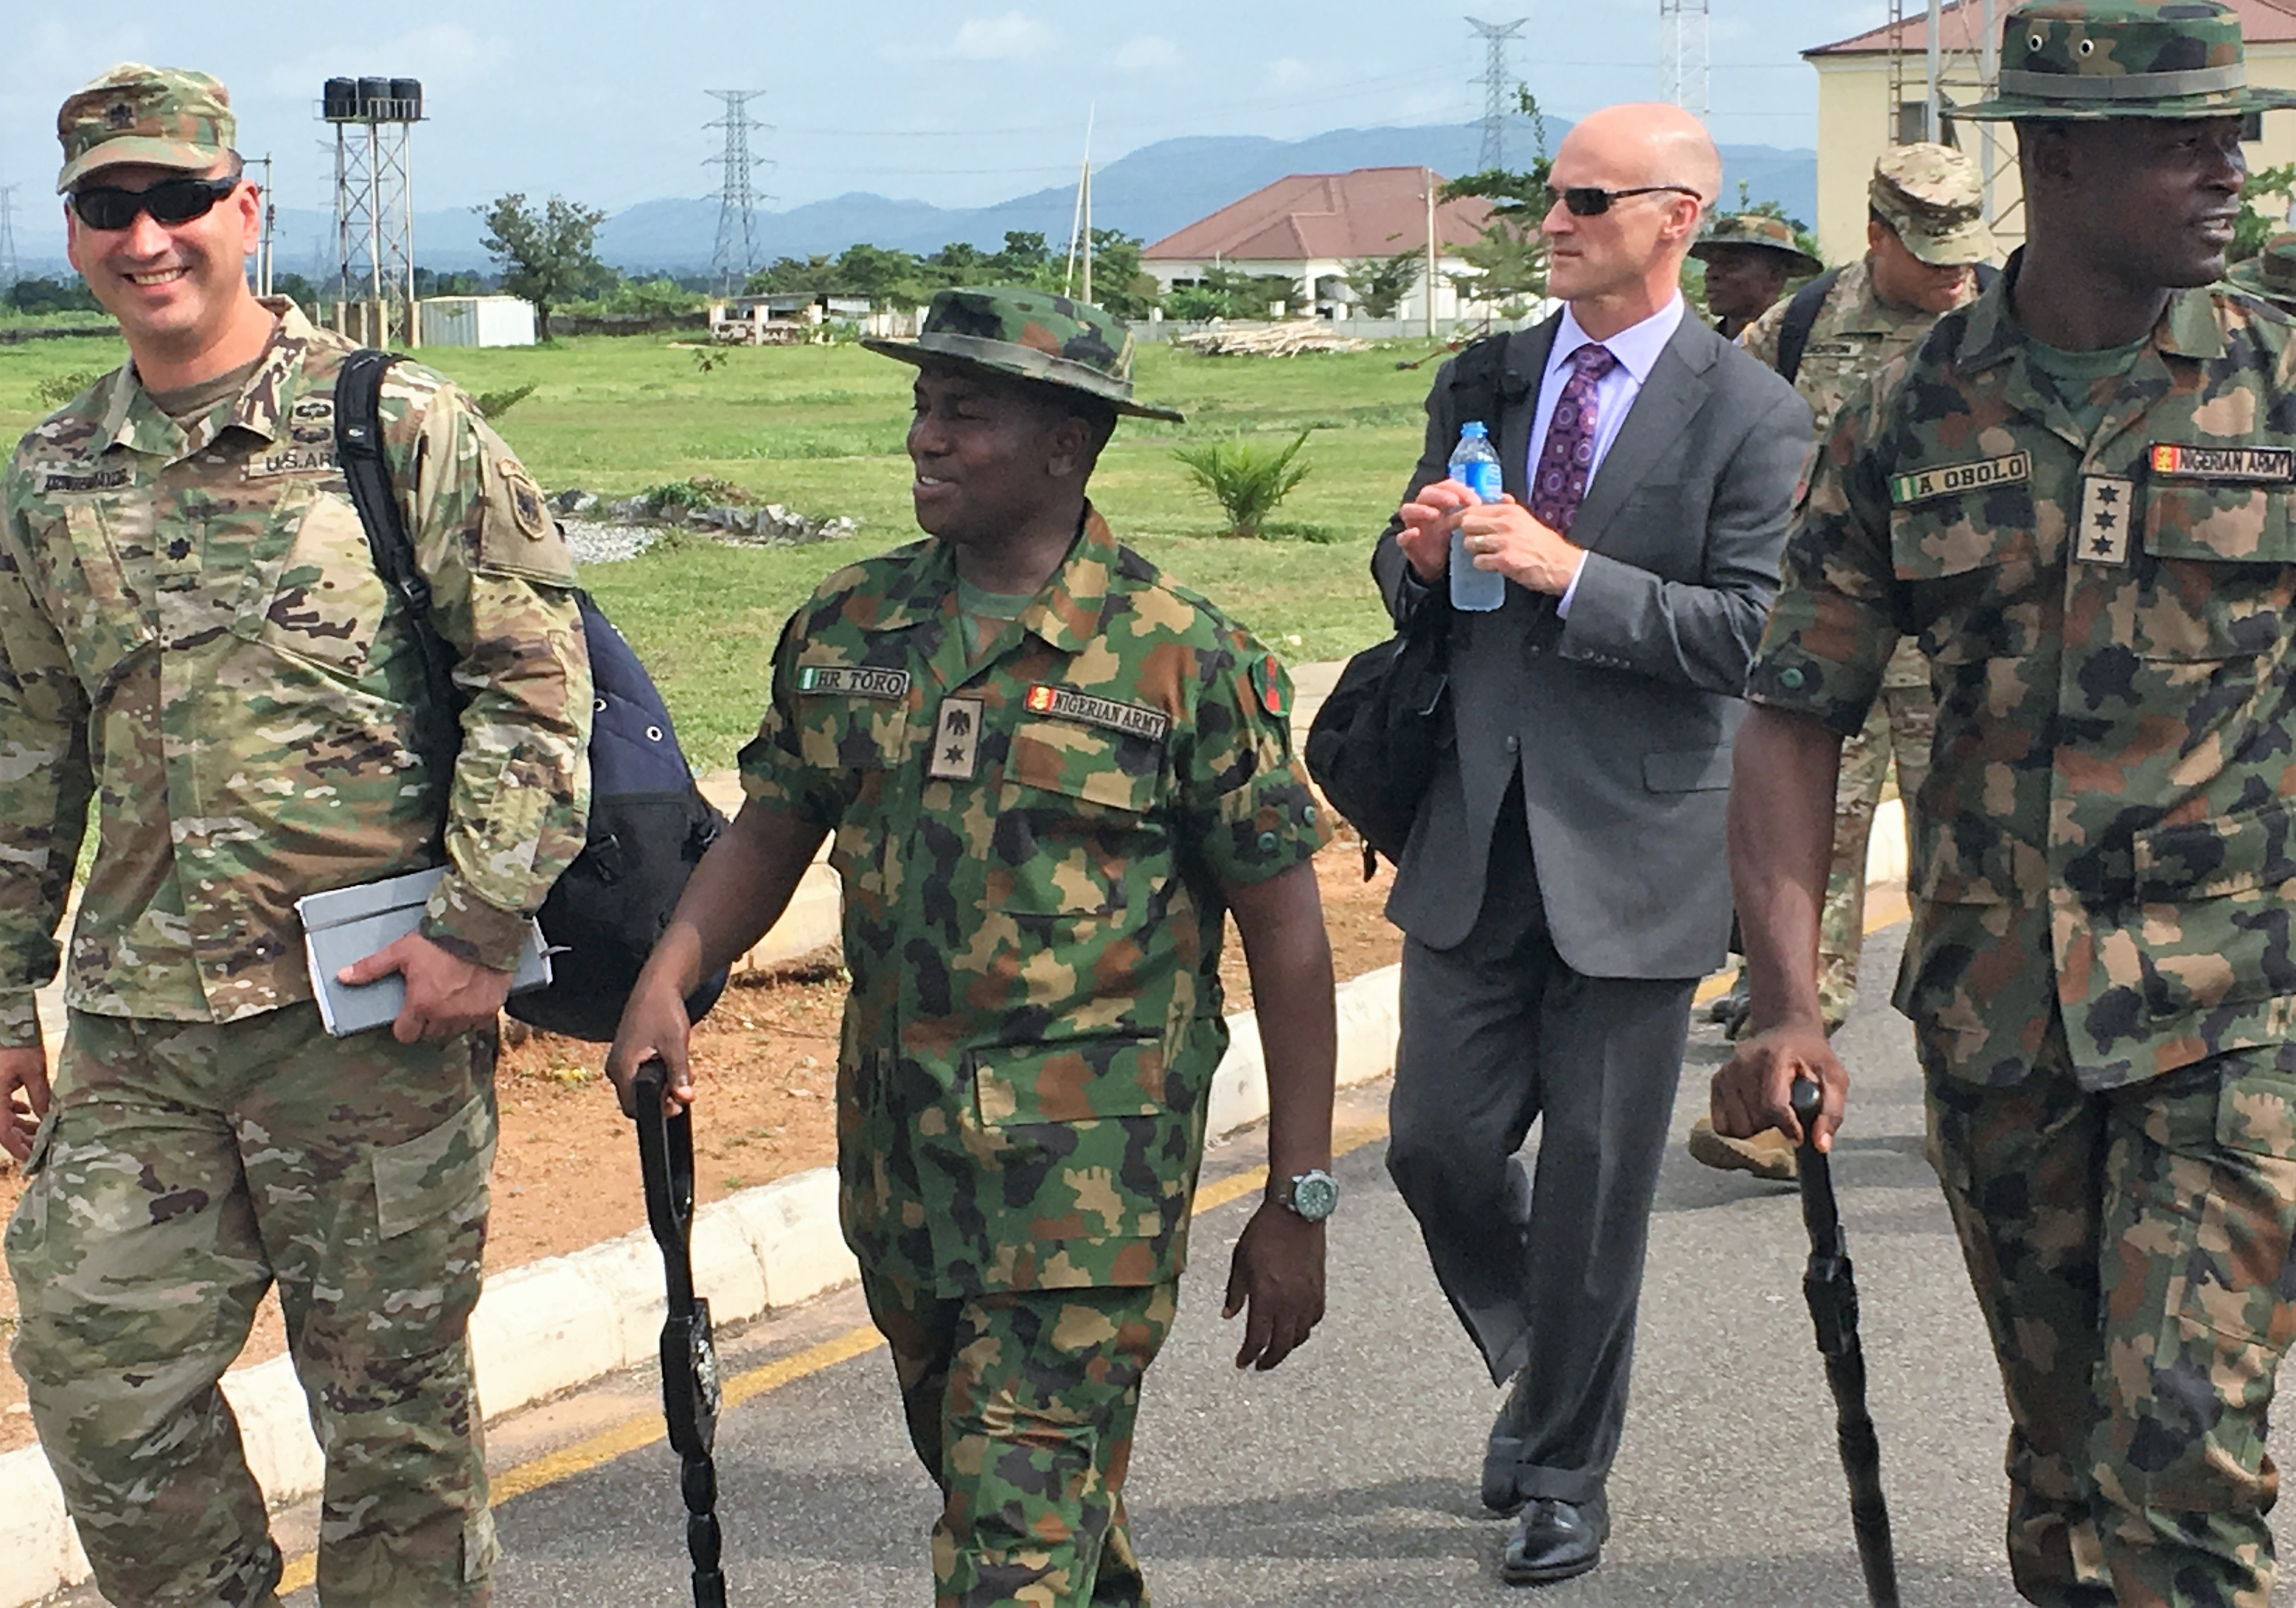 African Land Forces Summit 2018 lead planner, Lt. Col. Hector Montemayor (left) and Lt. Col. Husaini Toro, 176th Guards Battalion commander walk together at the proposed site for the summit's military demonstration in Abuja.  ALFS is a weeklong seminar designed to give African land force's chiefs an opportunity to discuss and develop solutions for improving security and stability in their home country. (Photo by Capt. James Sheehan)